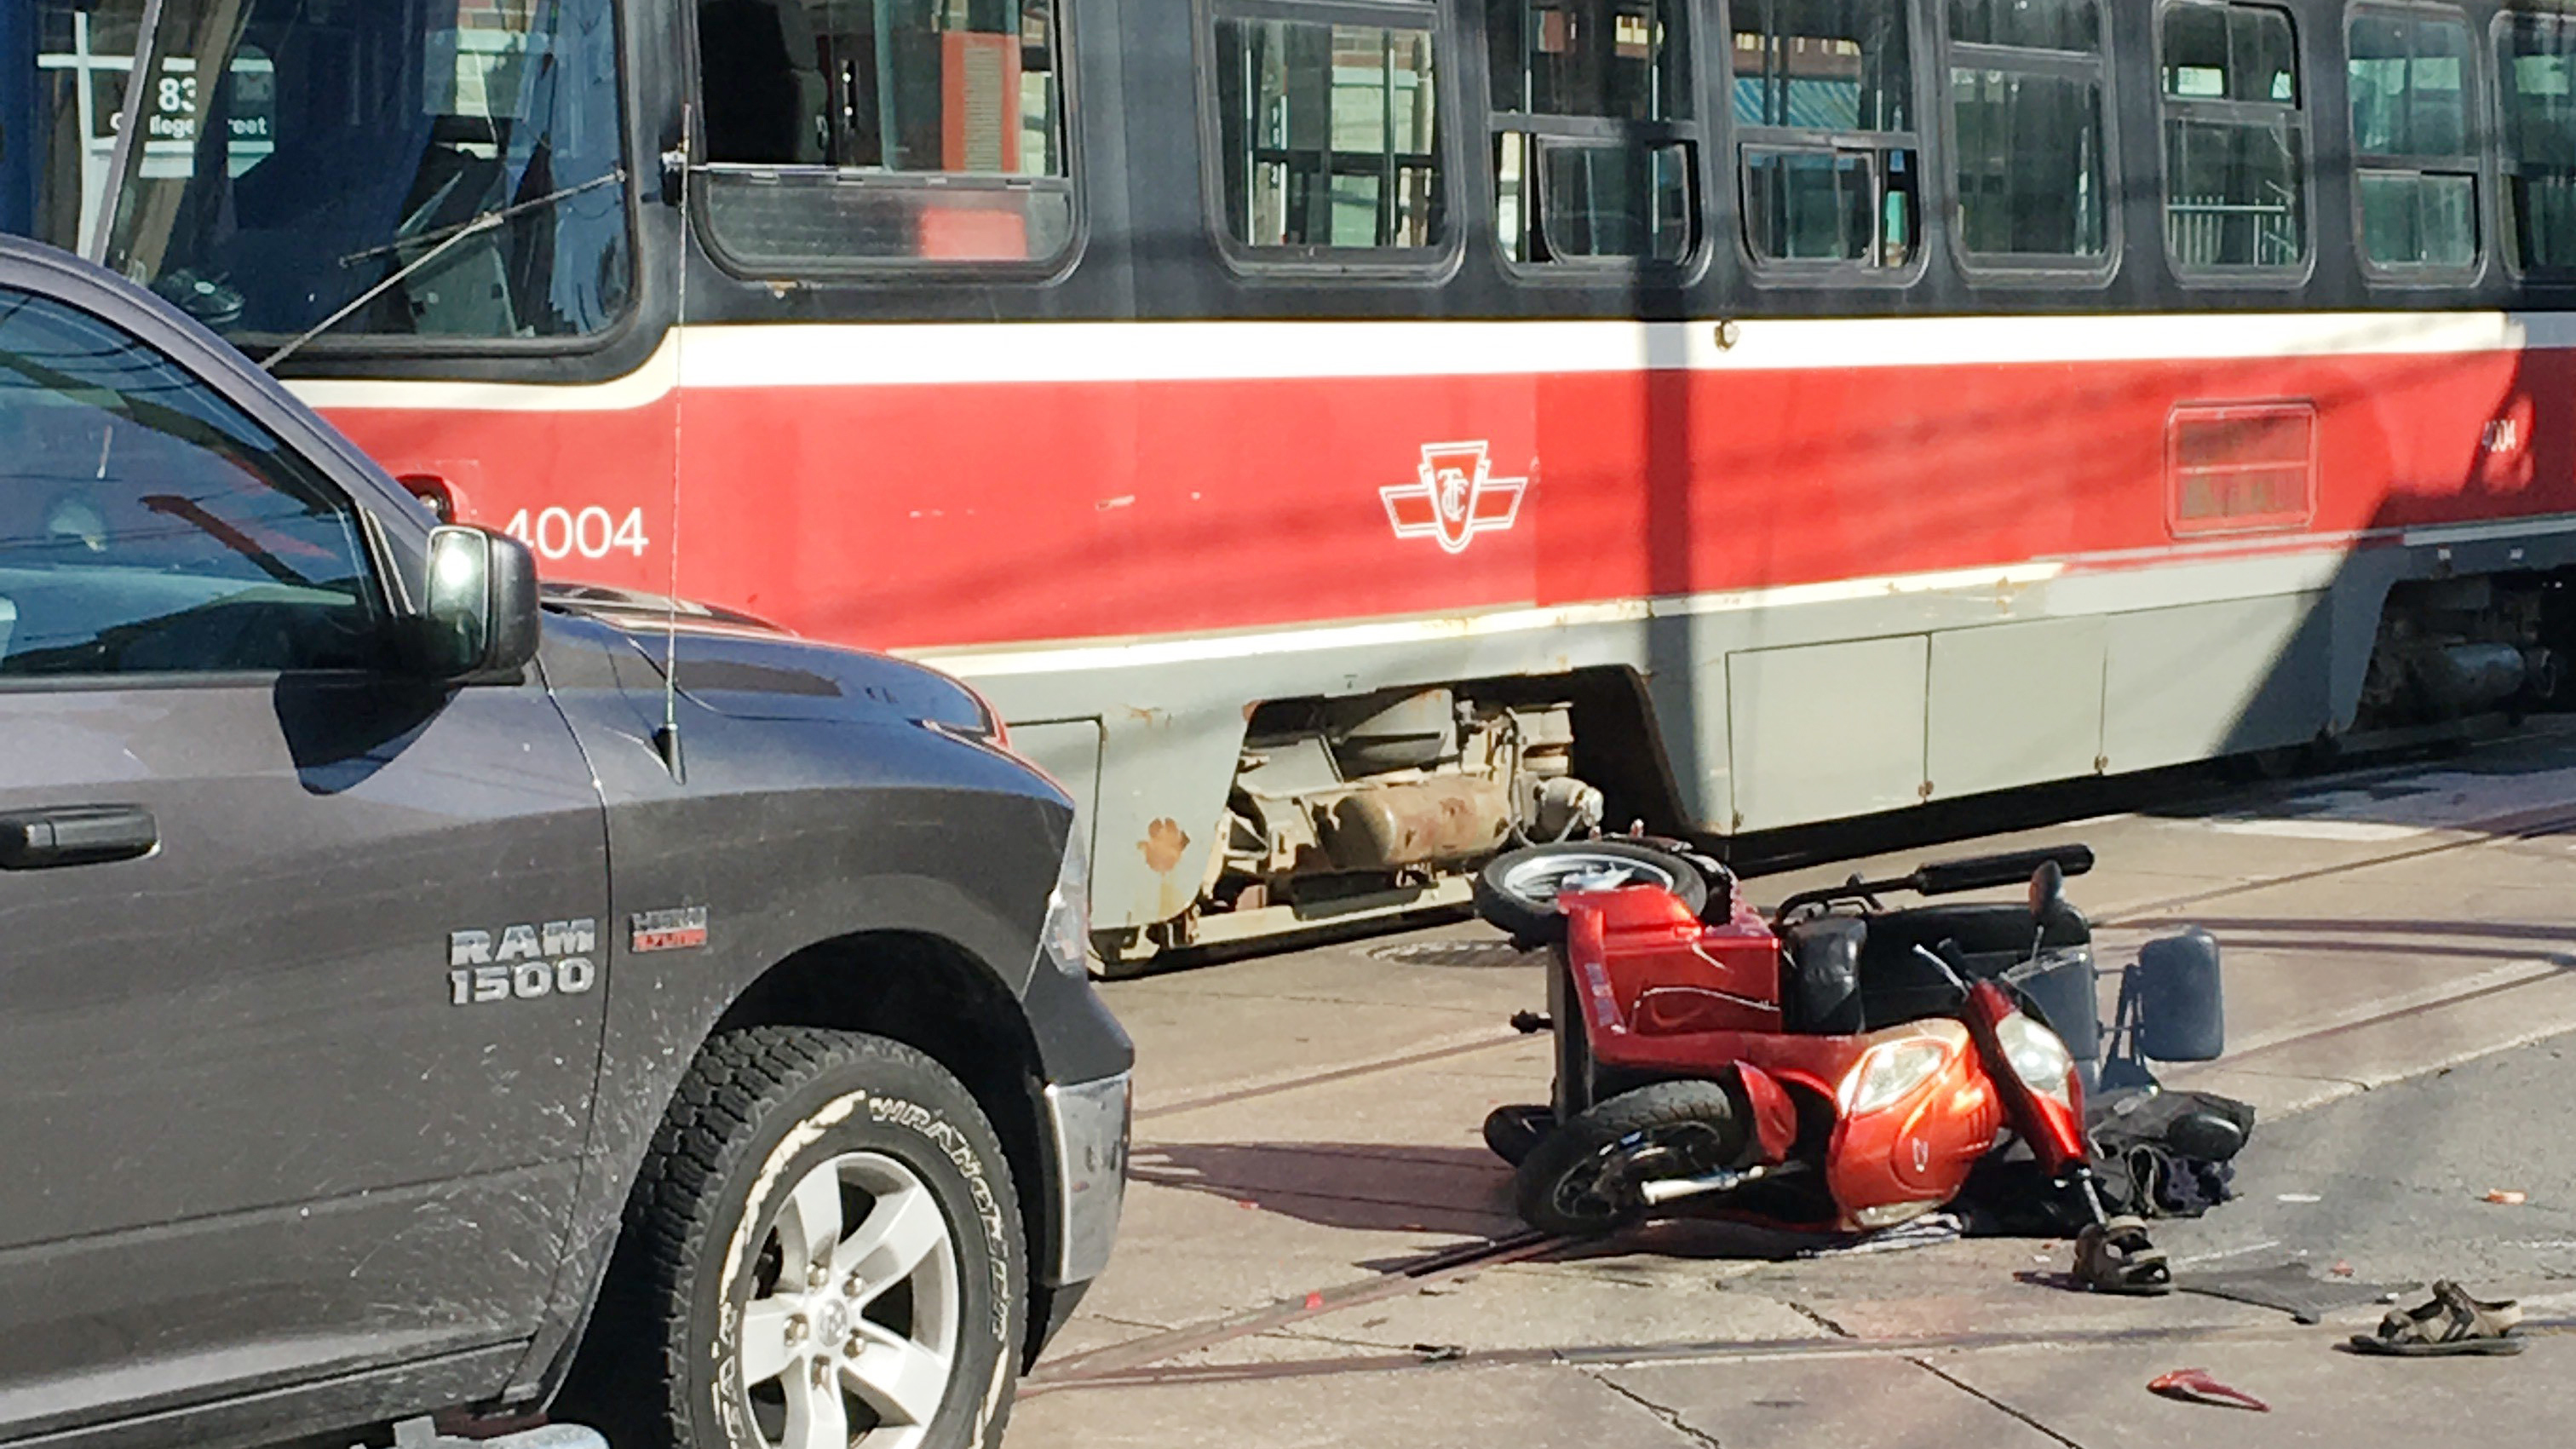 A man was critically injured when he was hit by a pickup truck while riding a mobility scooter at College Street and Ossington Avenue in Toronto on Oct. 10, 2018. CITYNEWS/Peter Dworschak